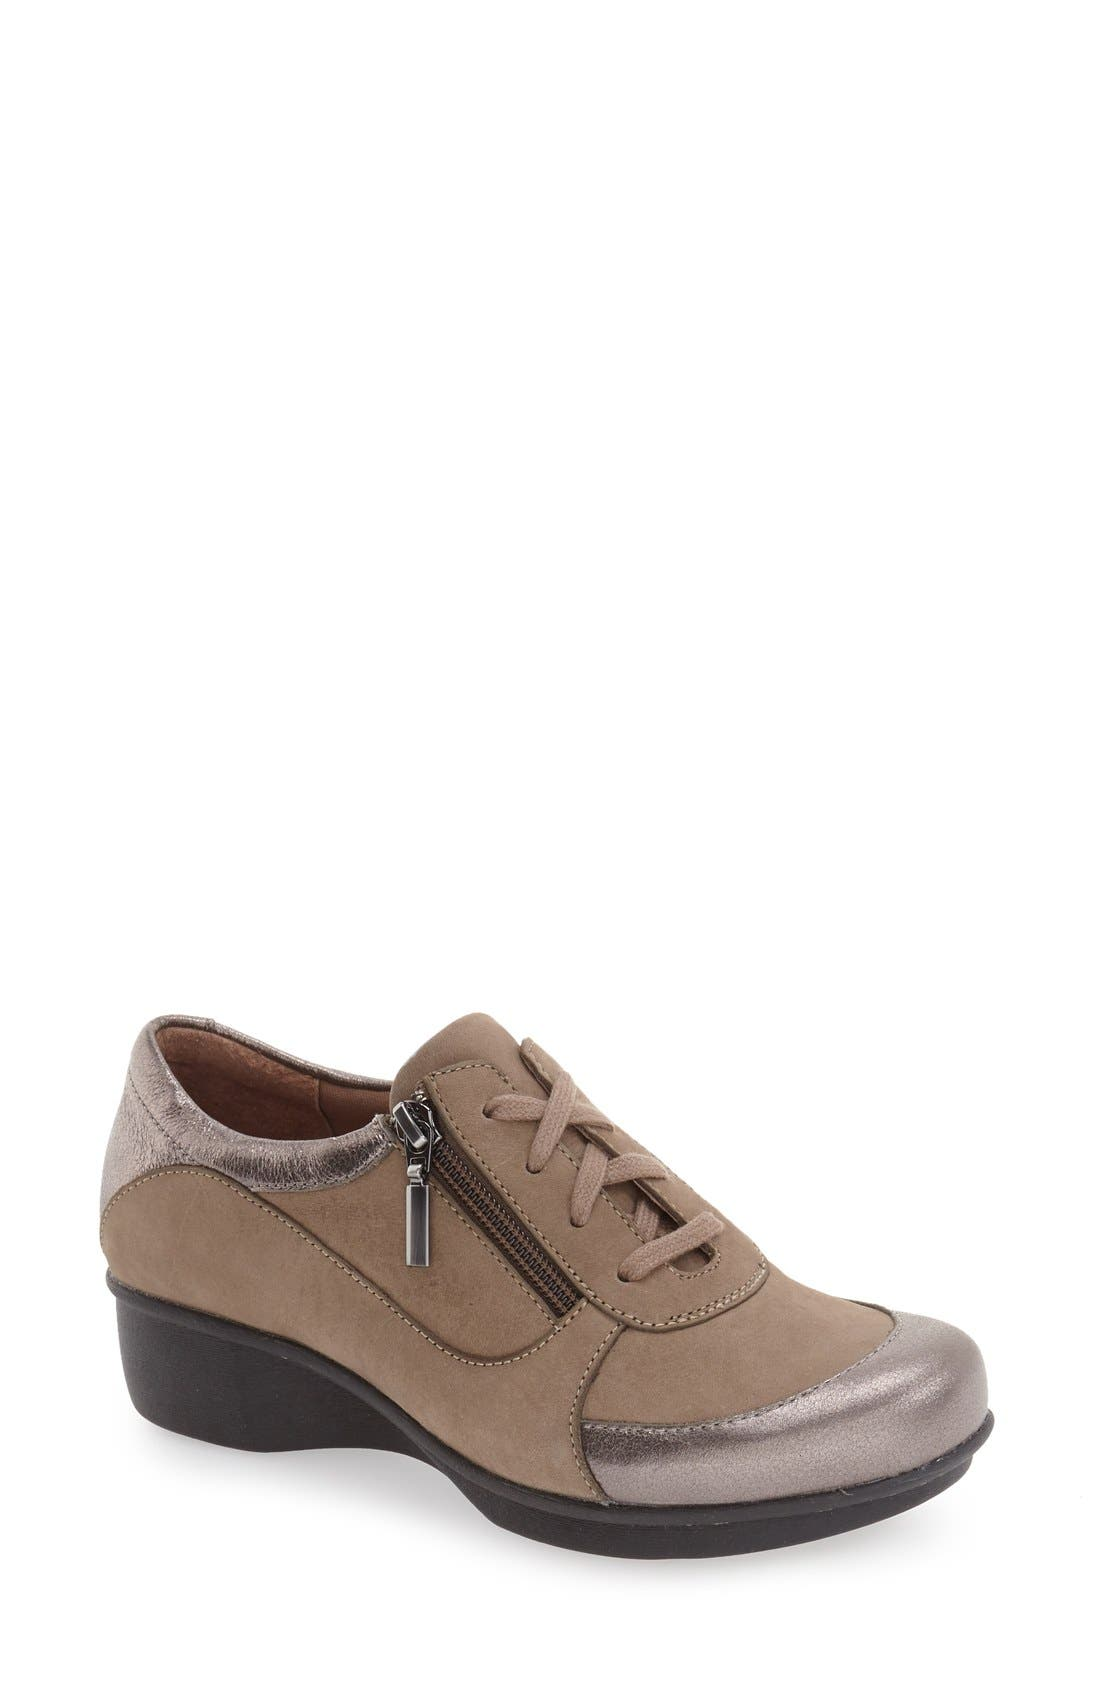 Alternate Image 1 Selected - Dansko 'Loretta' Platform Sneaker (Women)